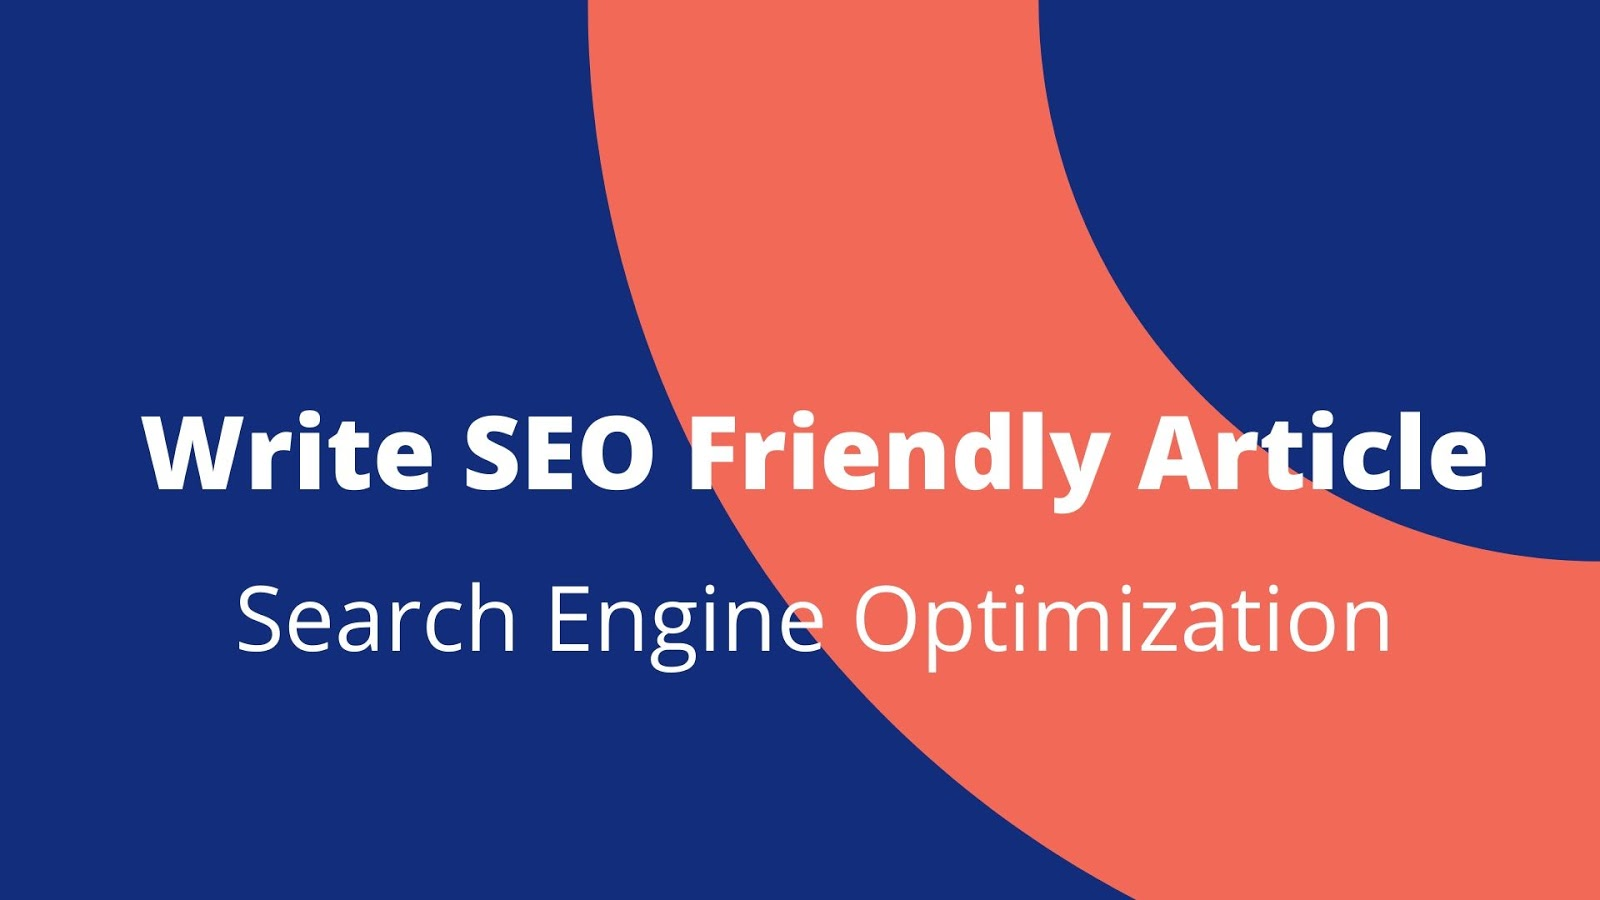 How to Write SEO Friendly Article, Keyword Research, Attractive Headline, Optimize your Image, SEO